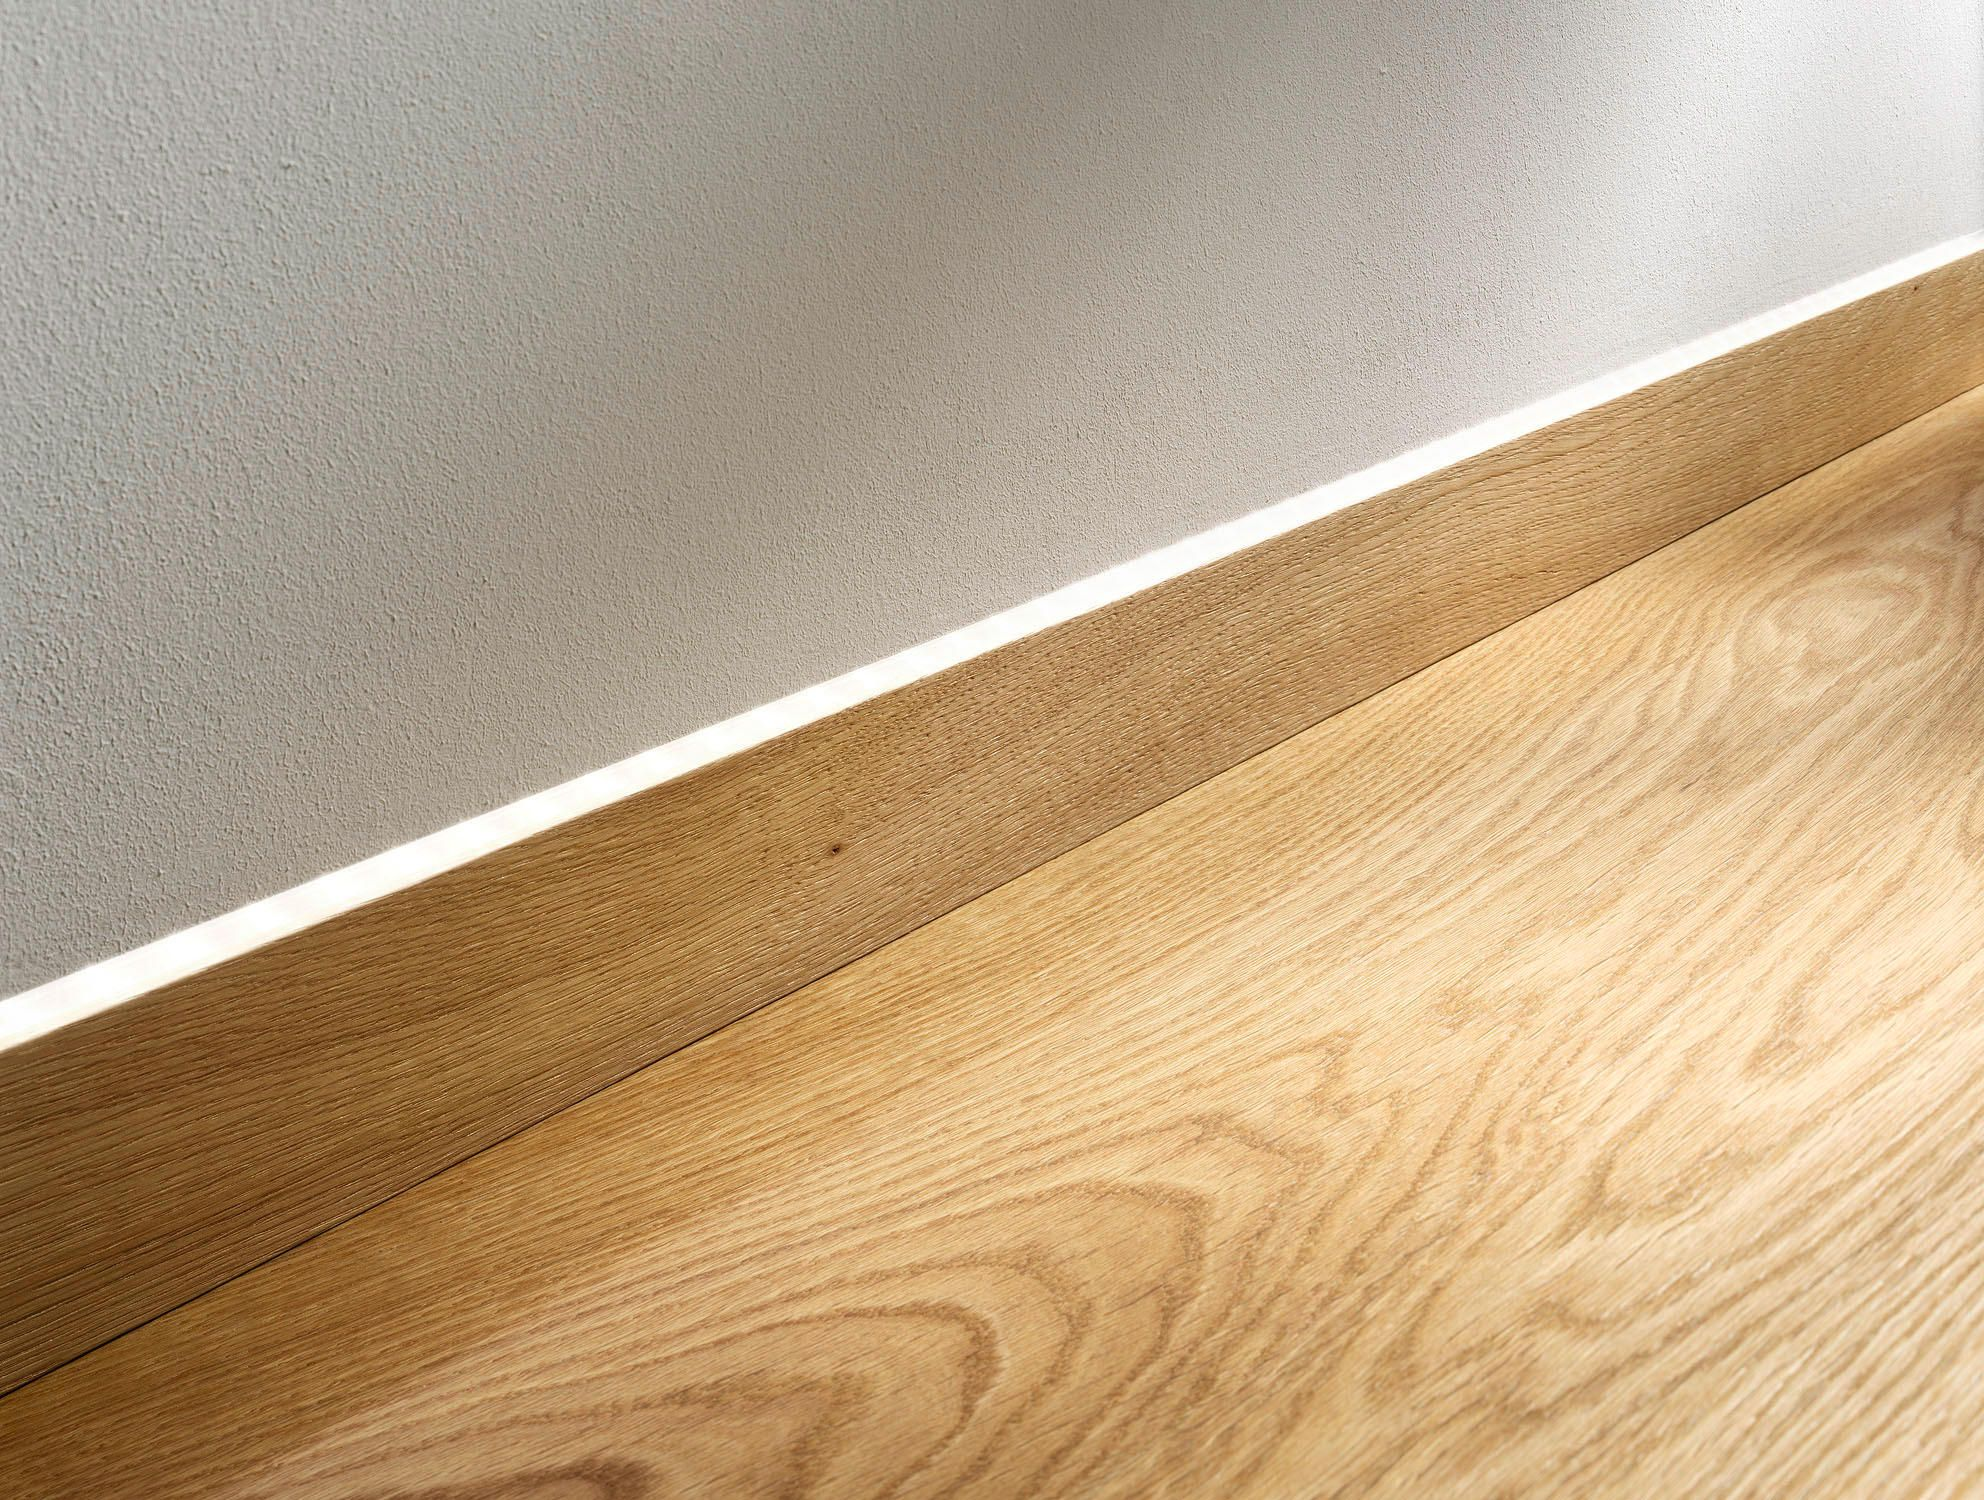 Flush Mount Skirting Board With Led By Admonter Holzindustrie Ag